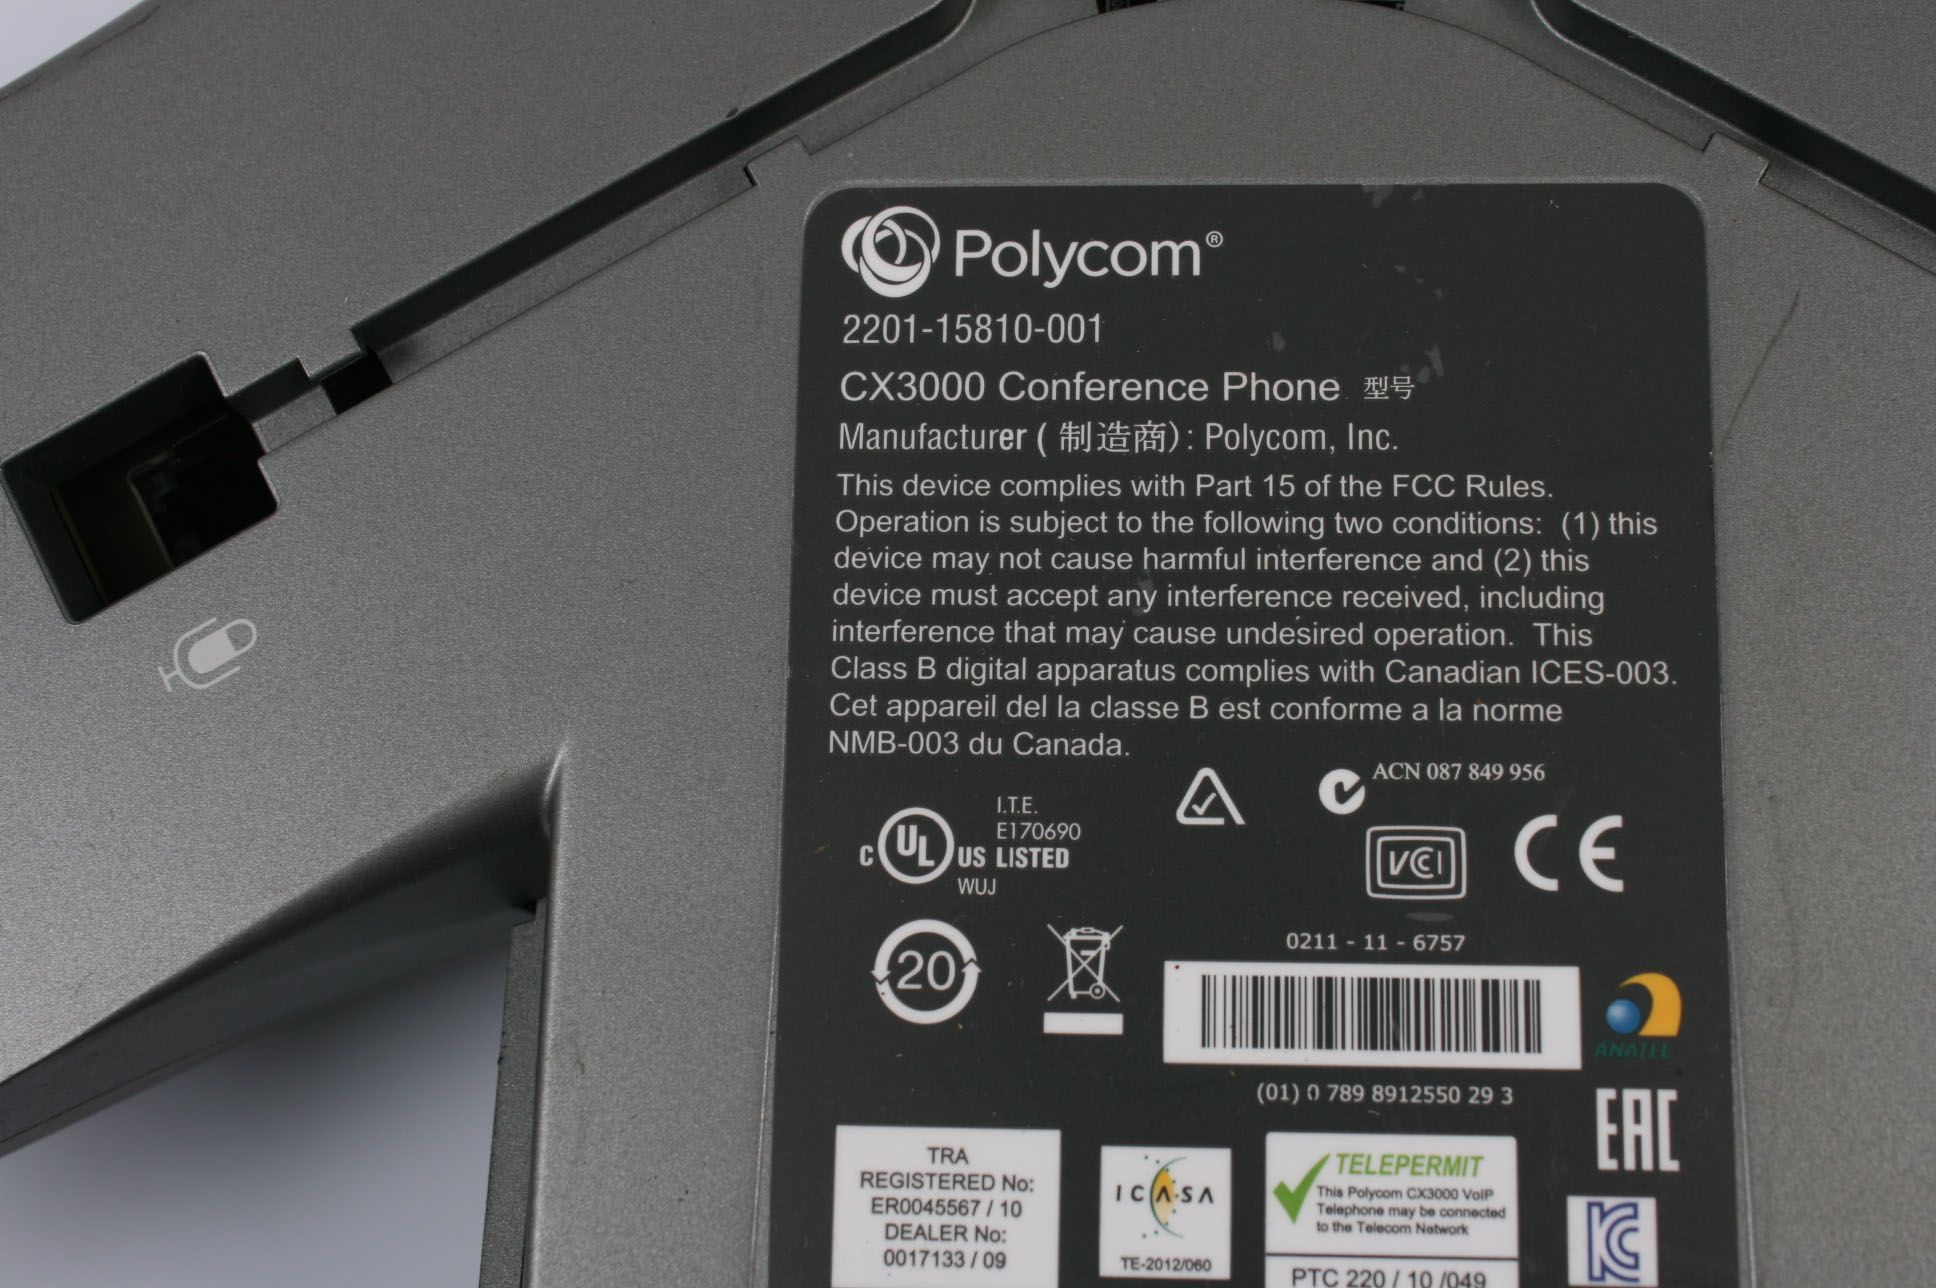 Polycom CX3000 IP Conference VoIP Phone 2201-15810-001